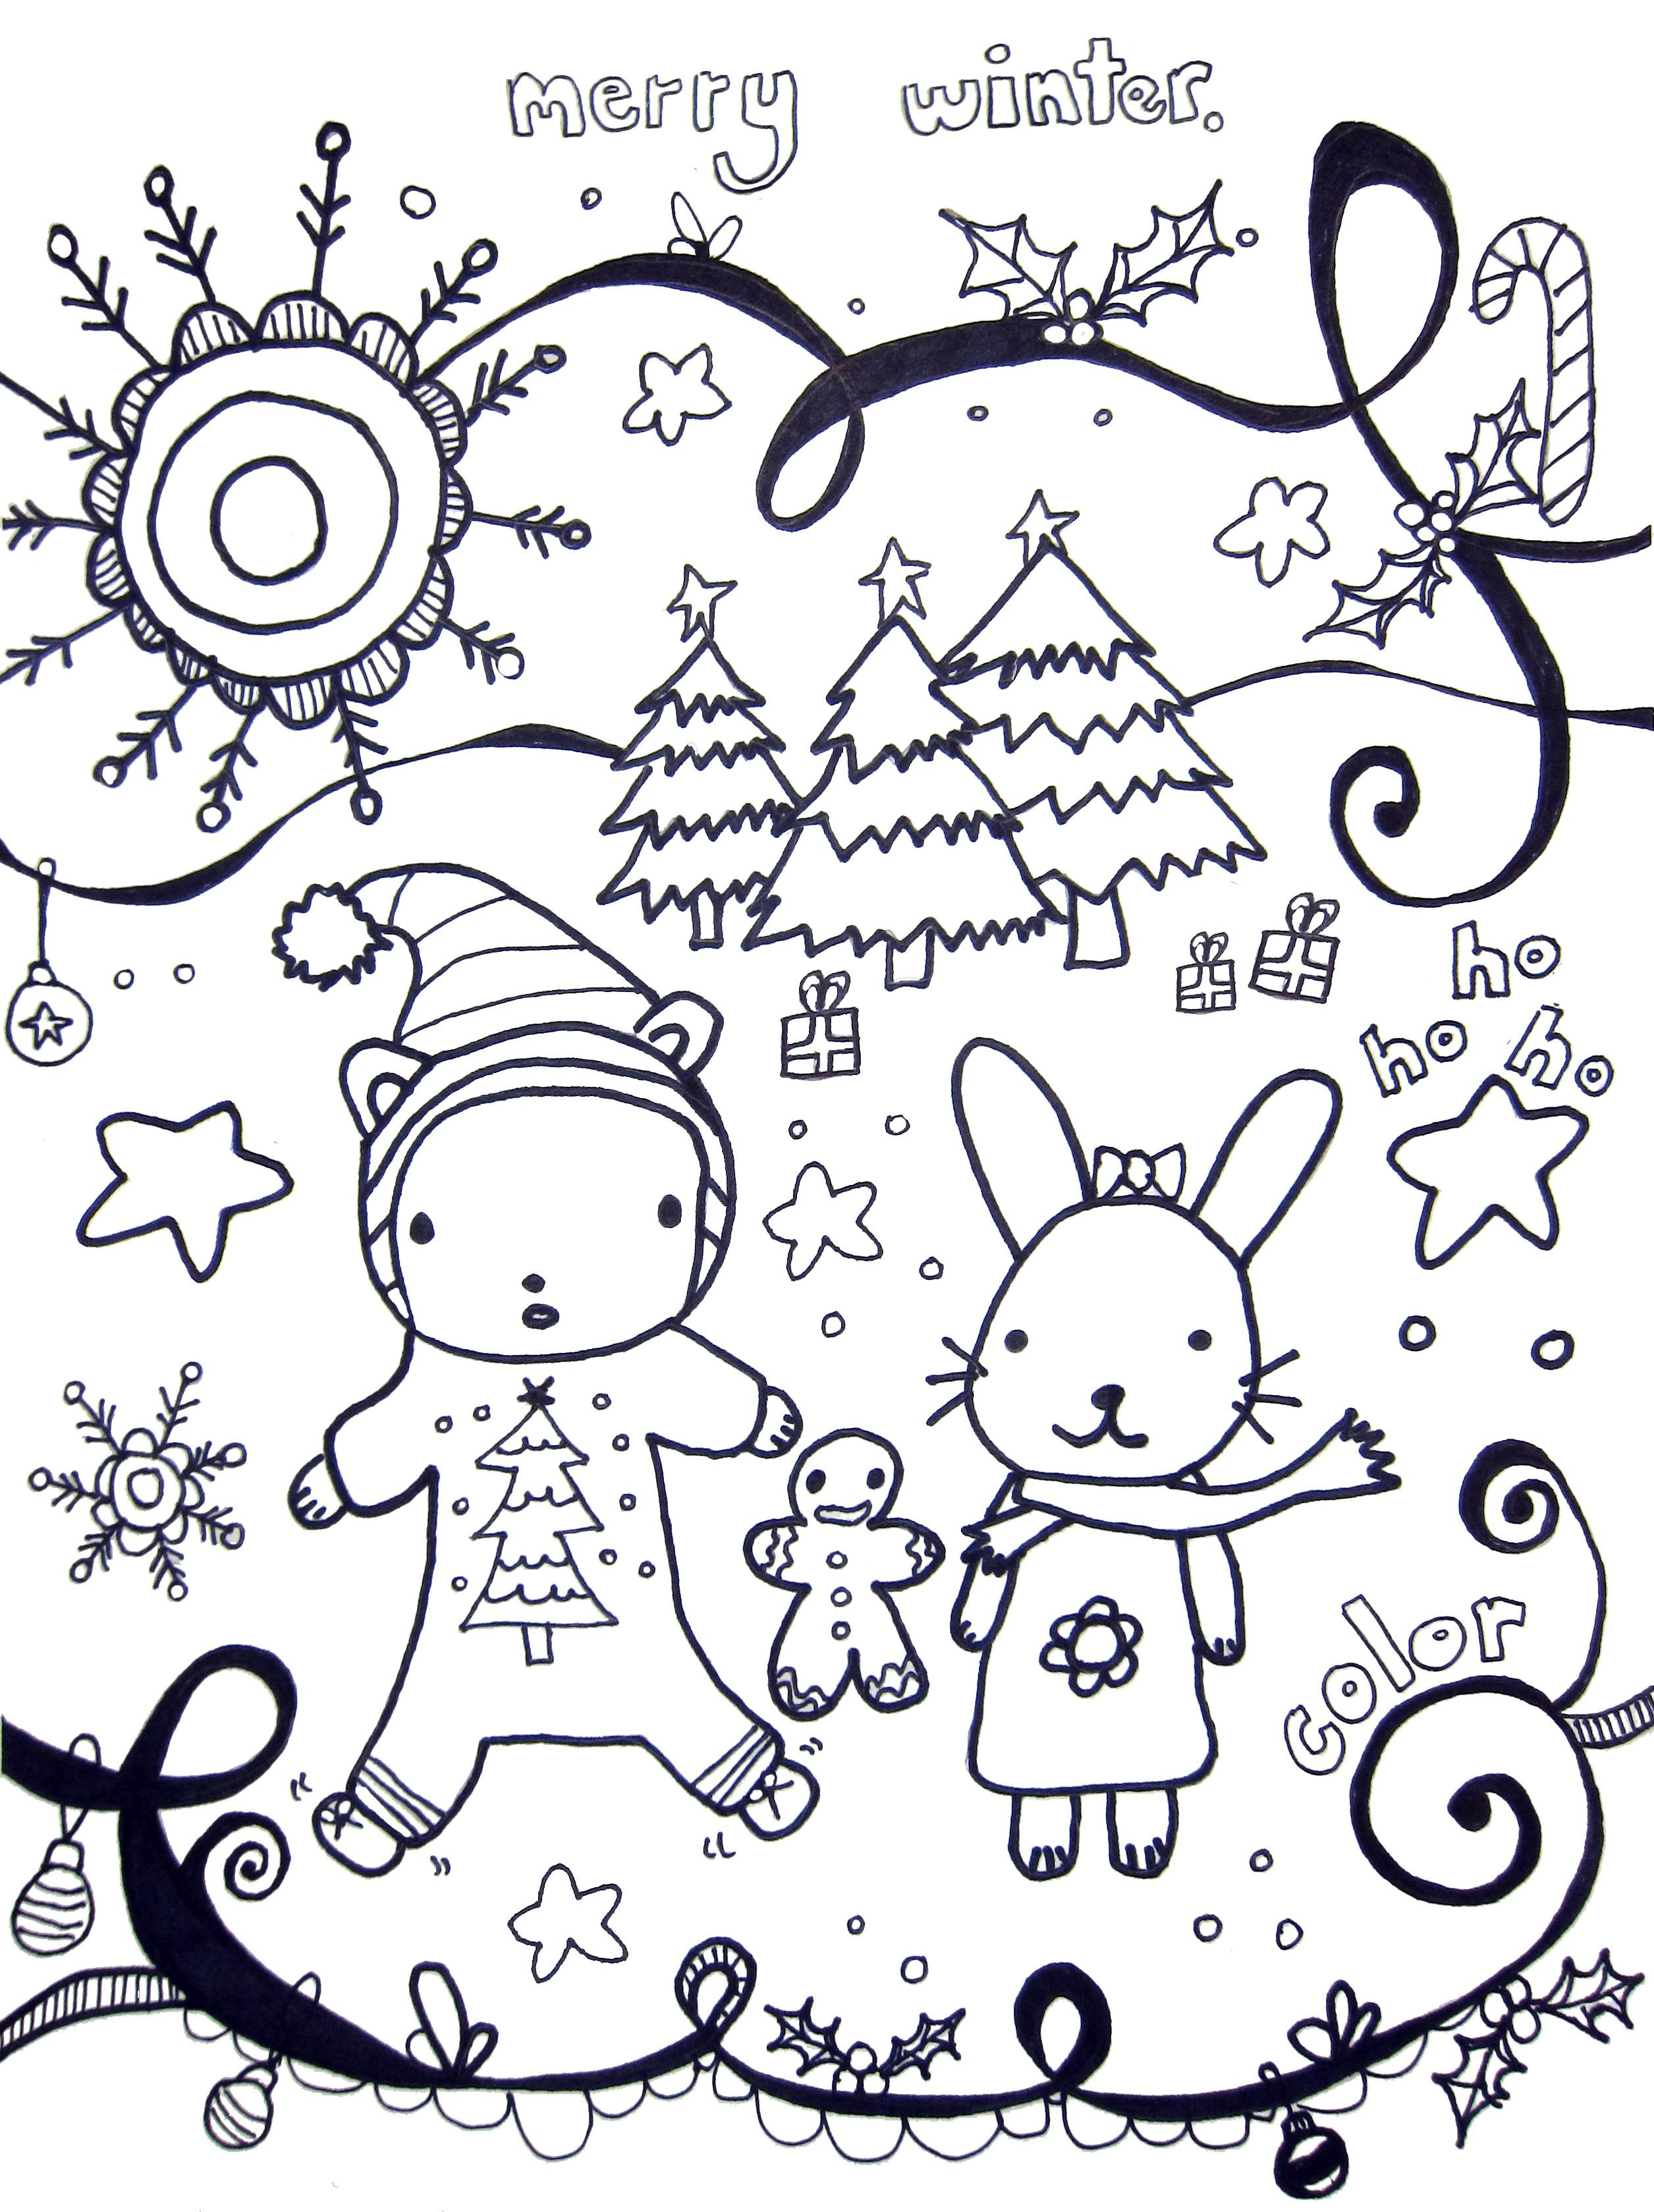 Winter Holidays Coloring Page Coloring Pages Winter Christmas Coloring Pages Coloring Pages For Kids